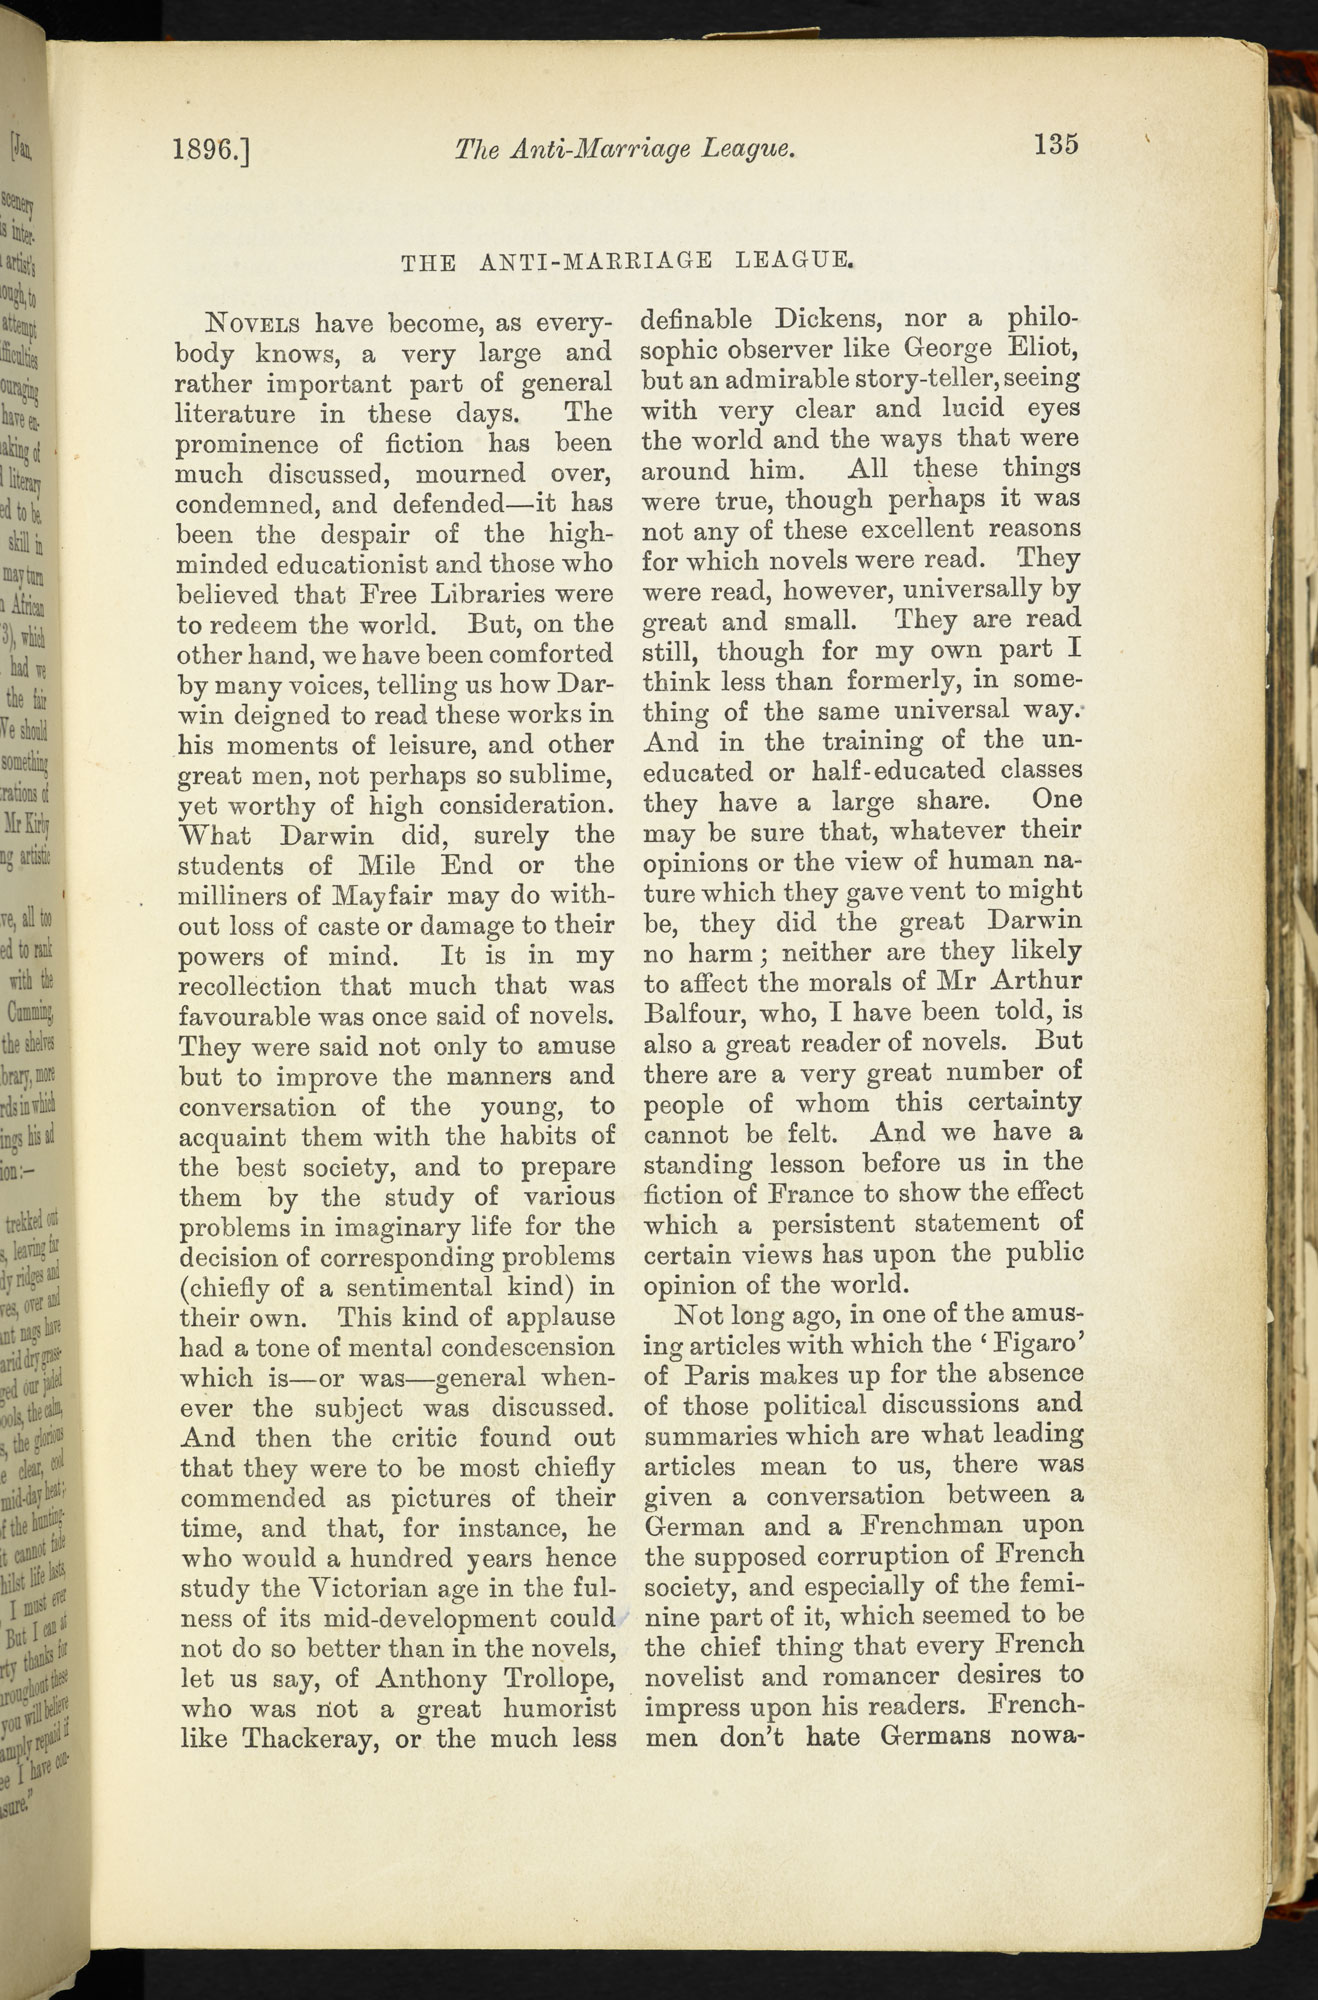 The Anti-Marriage League' from Blackwood's Edinburgh Magazine [page: 135]